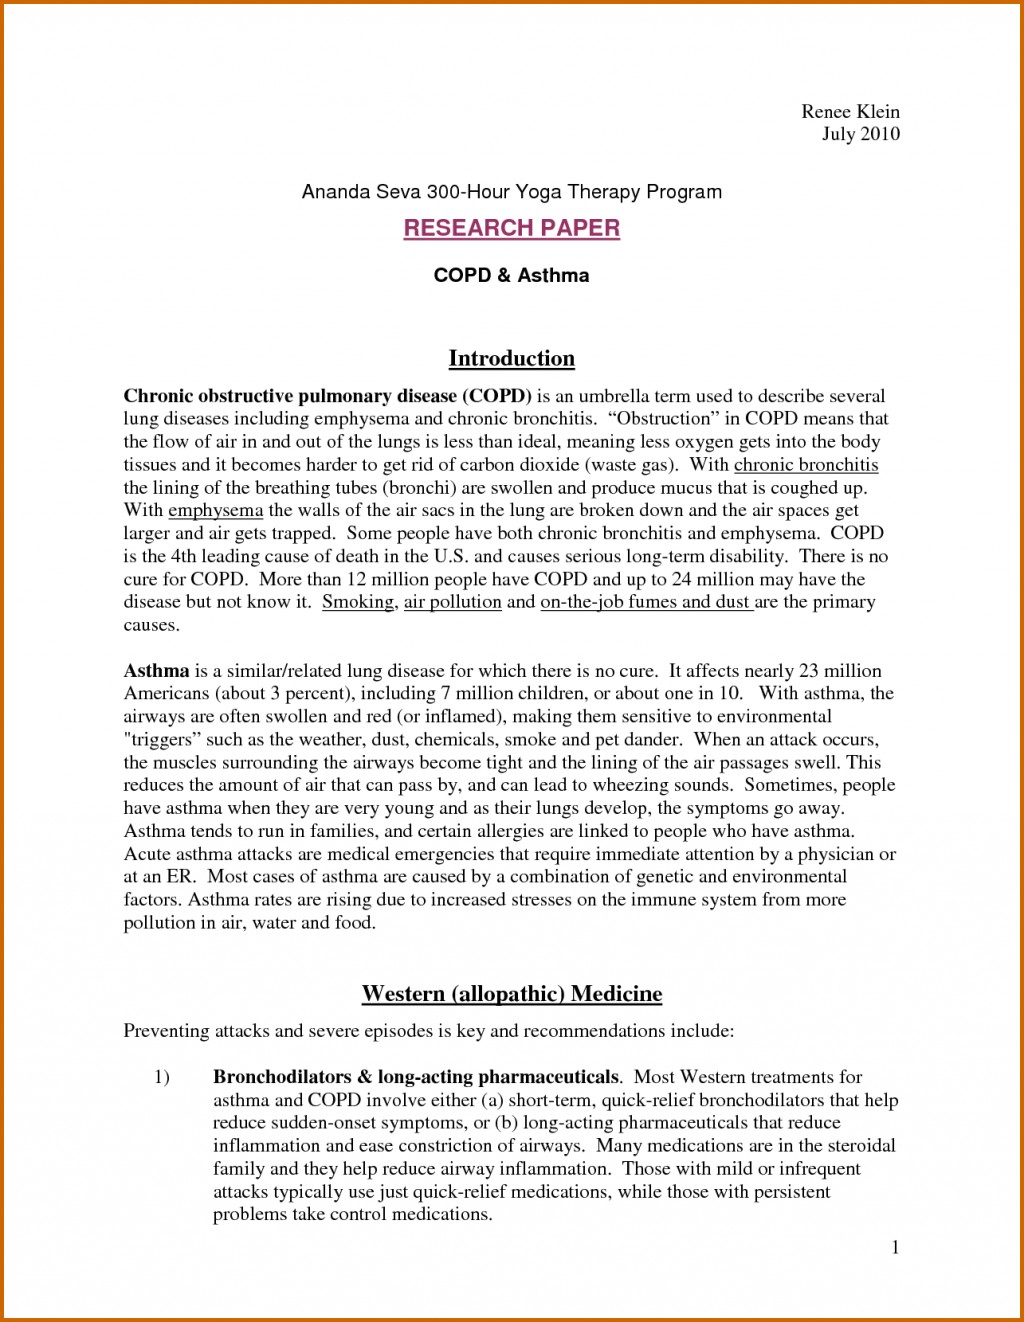 005 How To Write An Essay Introduction Sample College Samples Good Level Of Term Paper Example Stirring A Paragraph For Examples Large